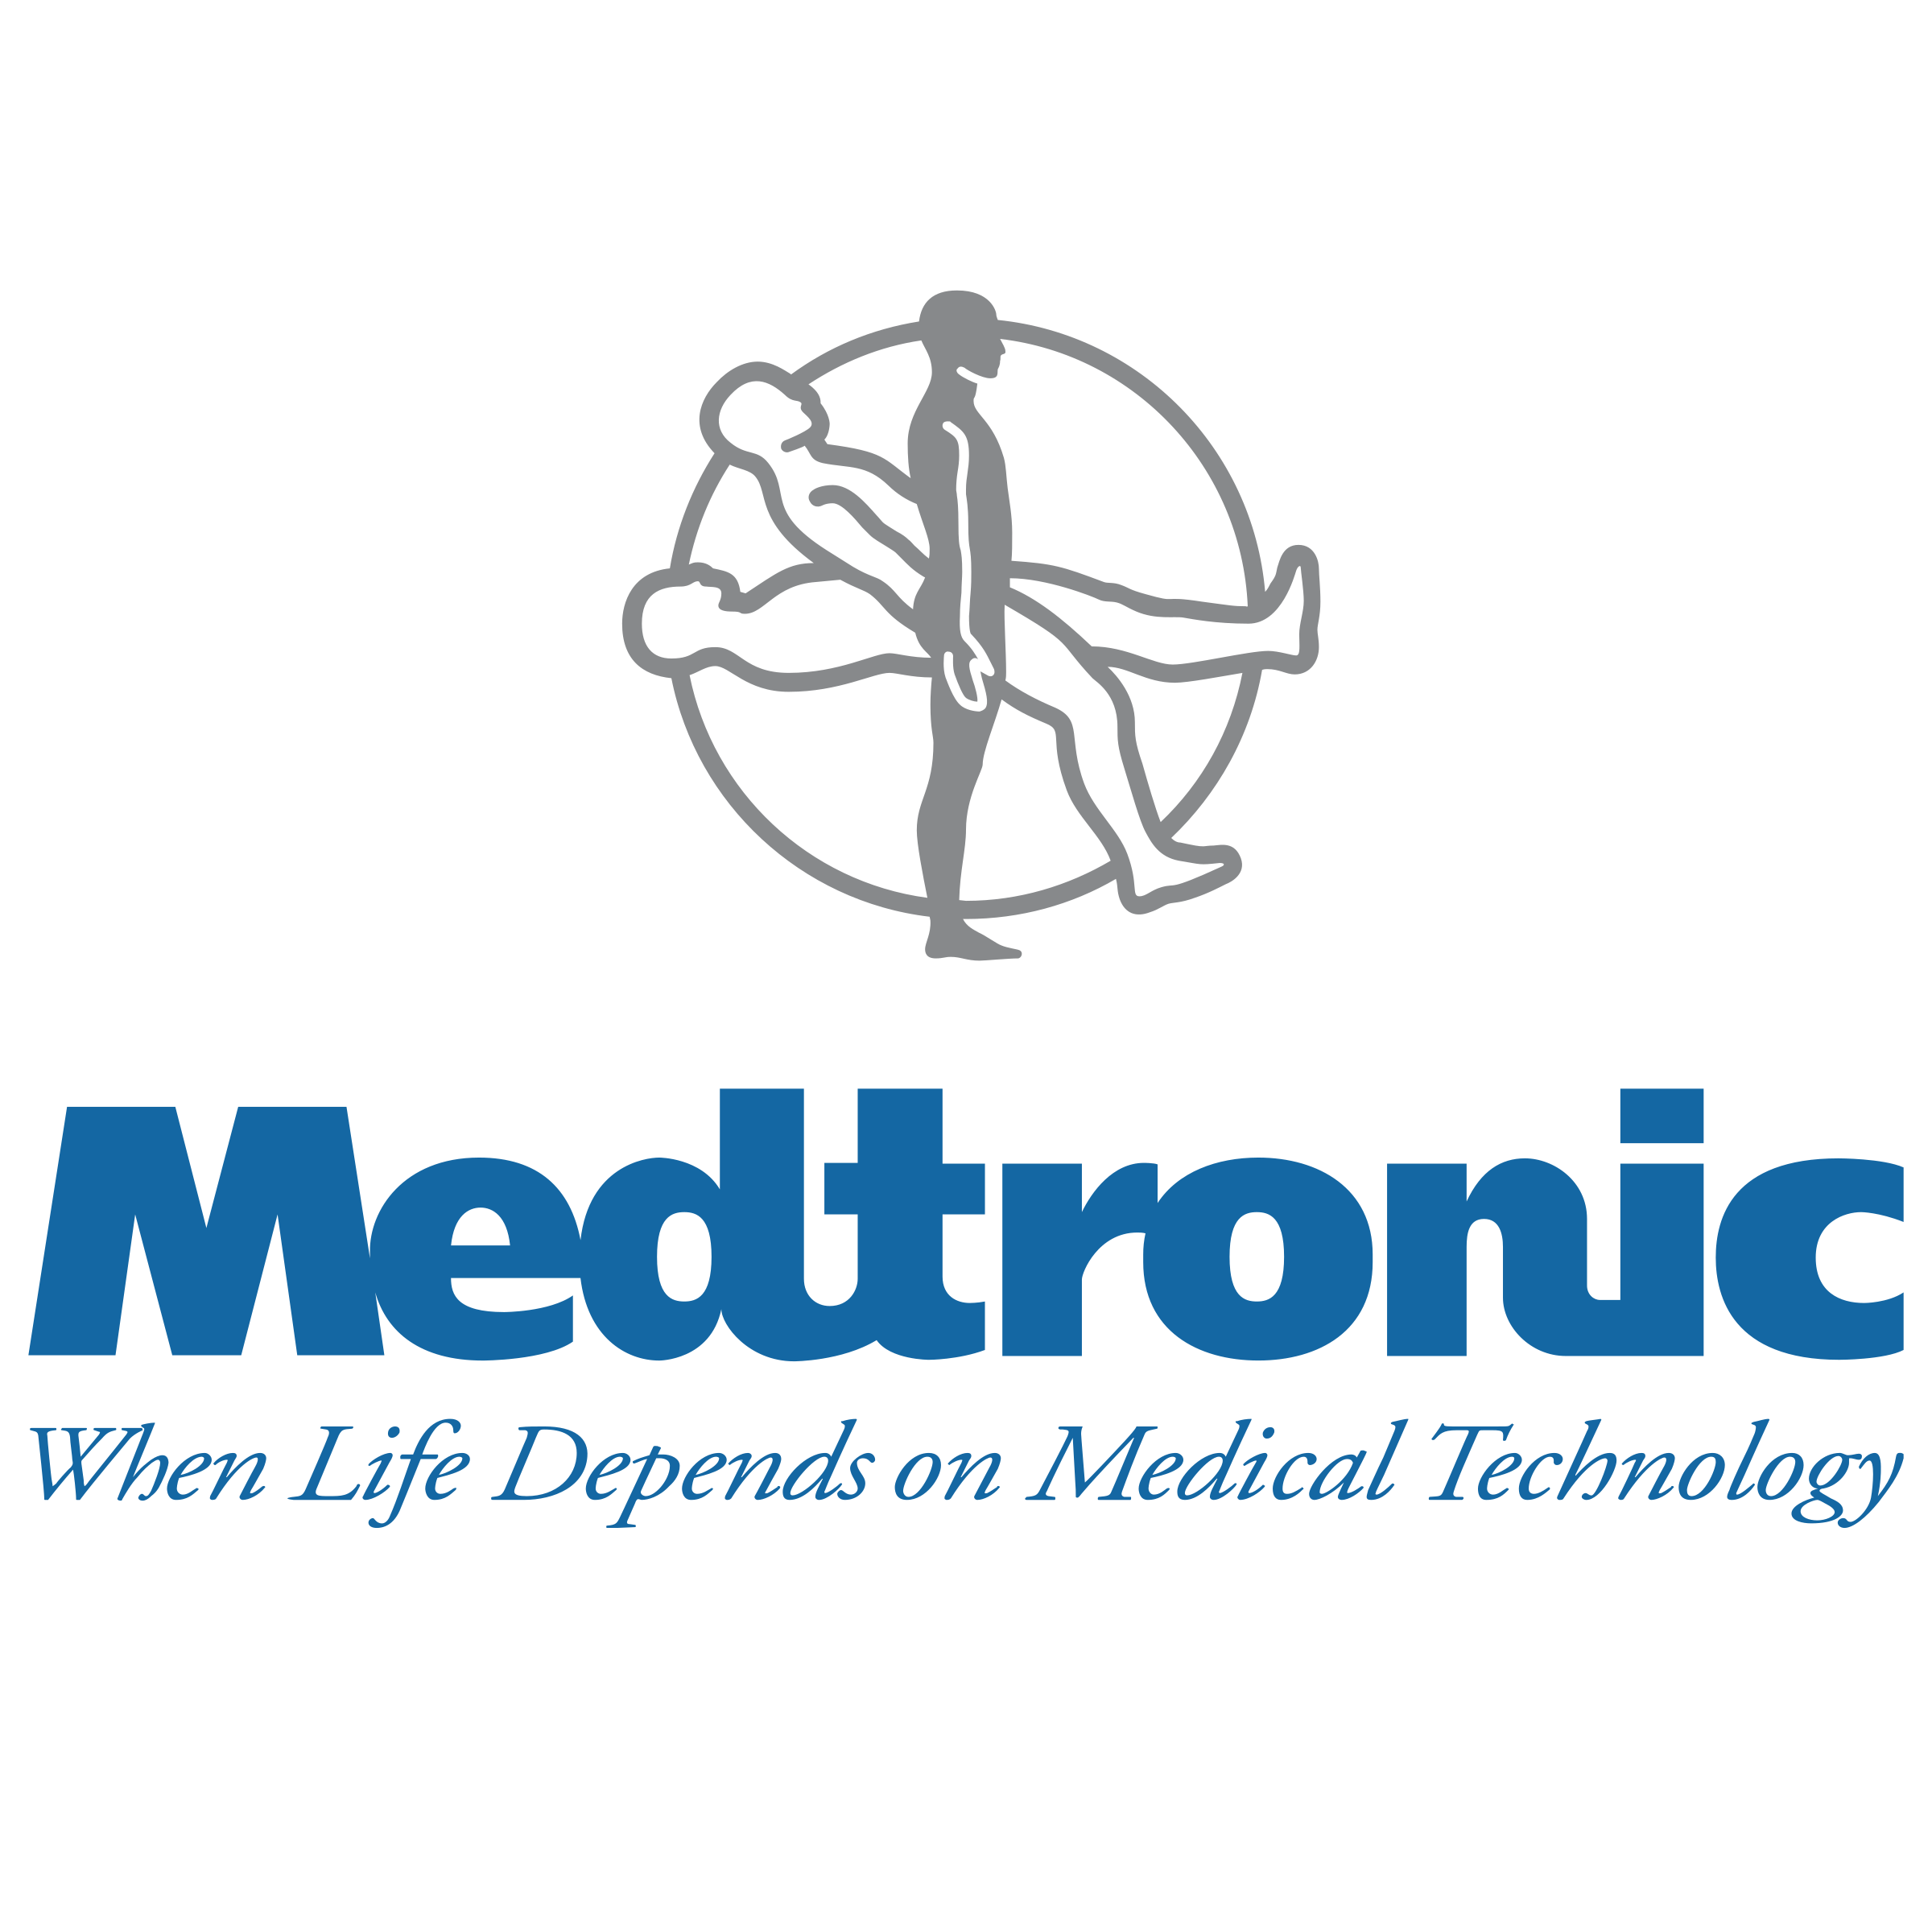 Jobs in Medtronic Company